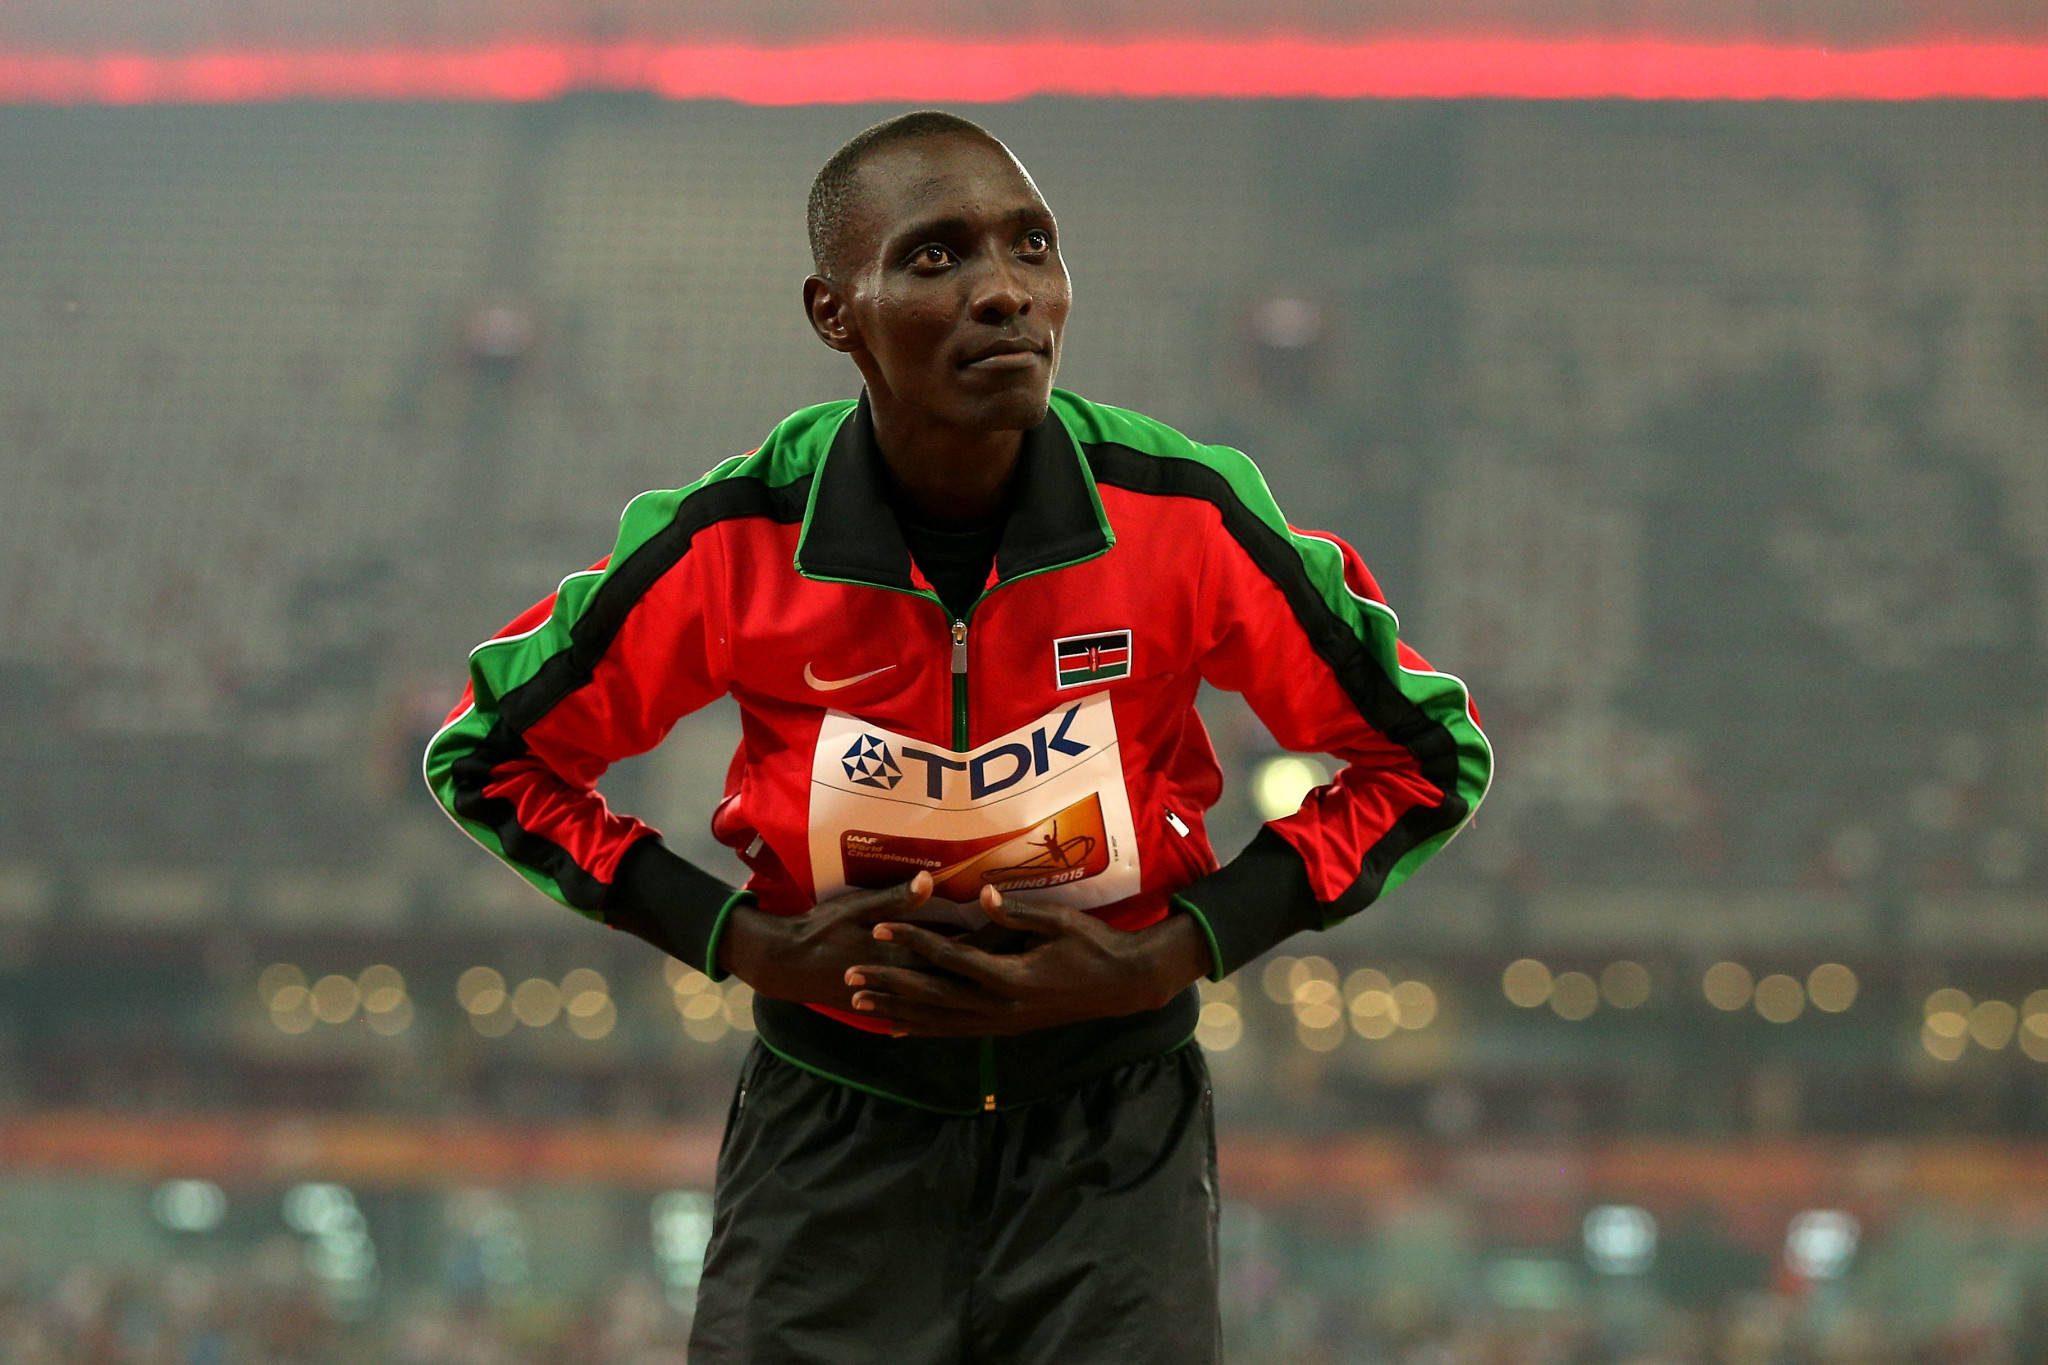 Asbel Kiprop claims he was notified of the out-of-competition test in advance ©Getty Images